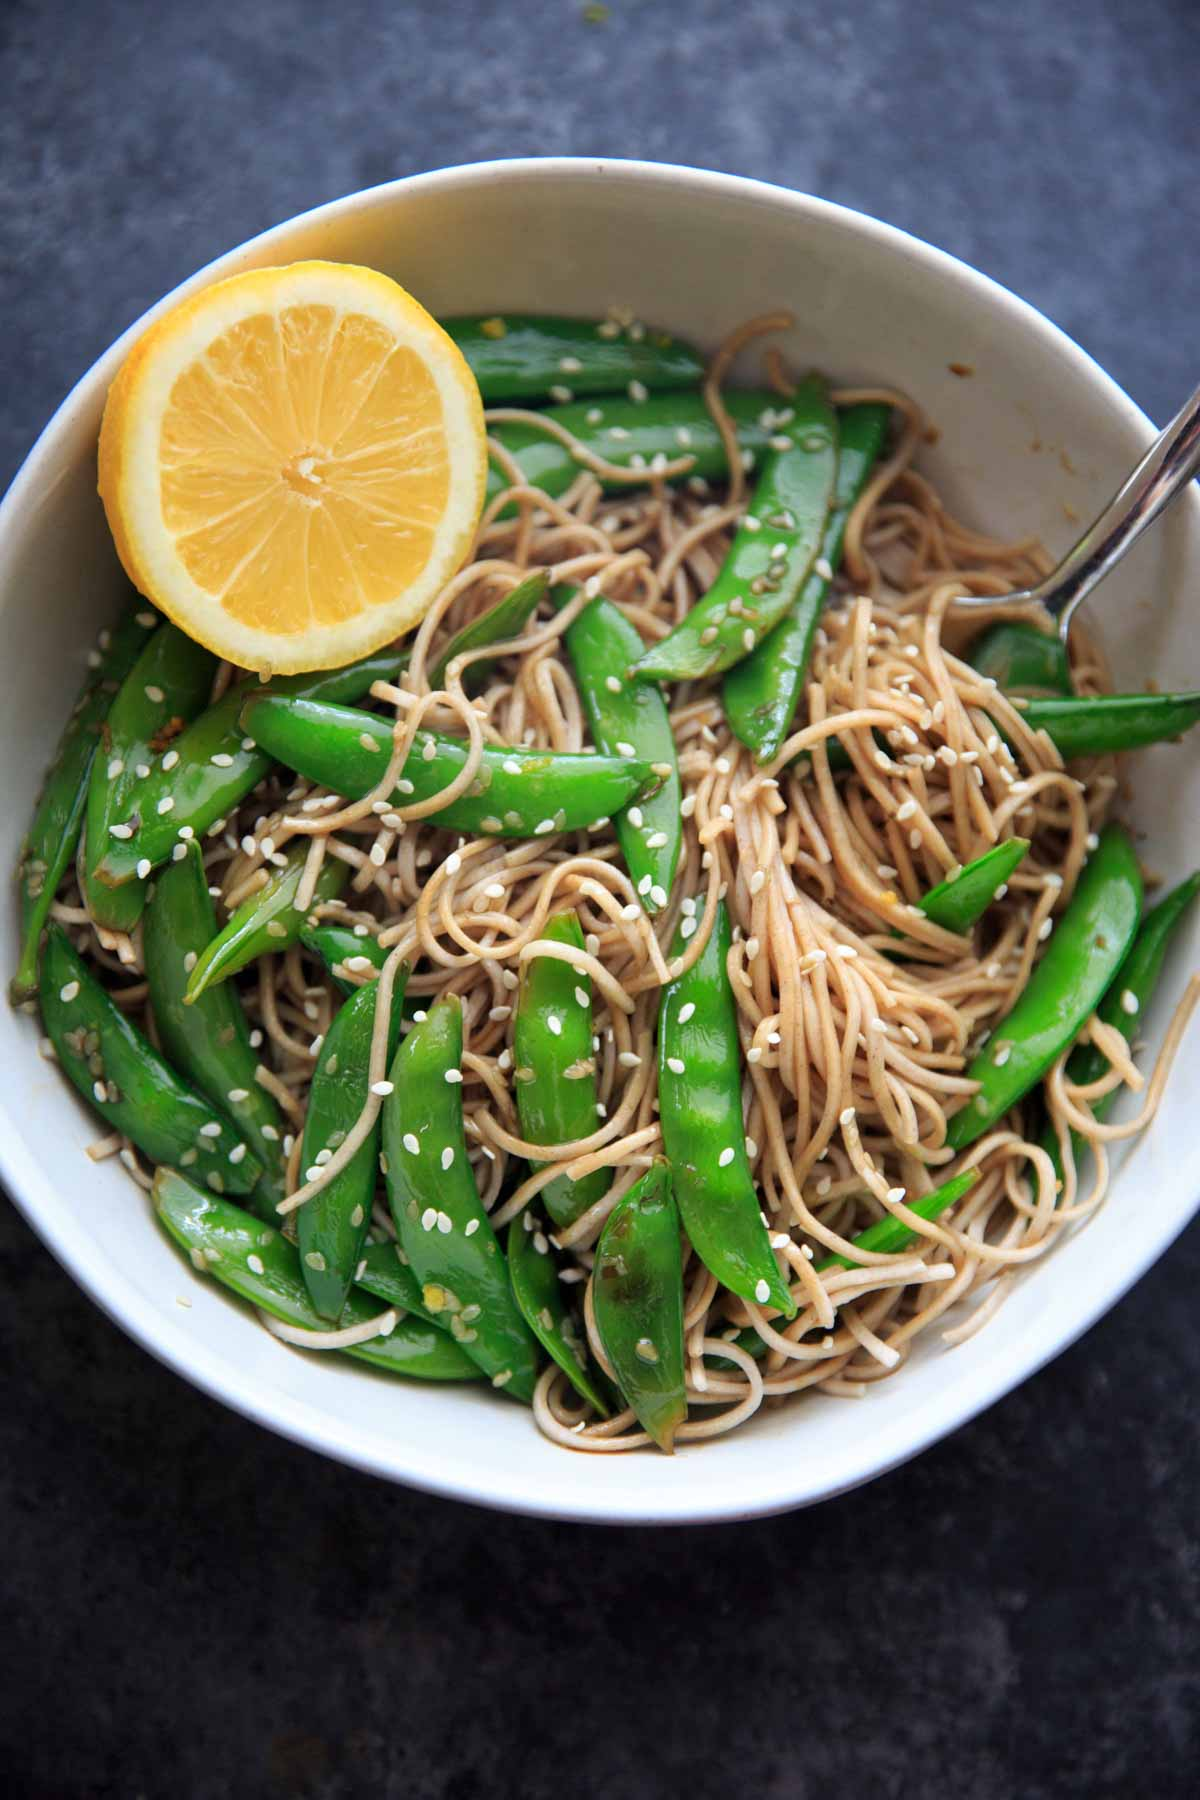 Lemon Sesame Sugar Snap Peas on Soba Noodles